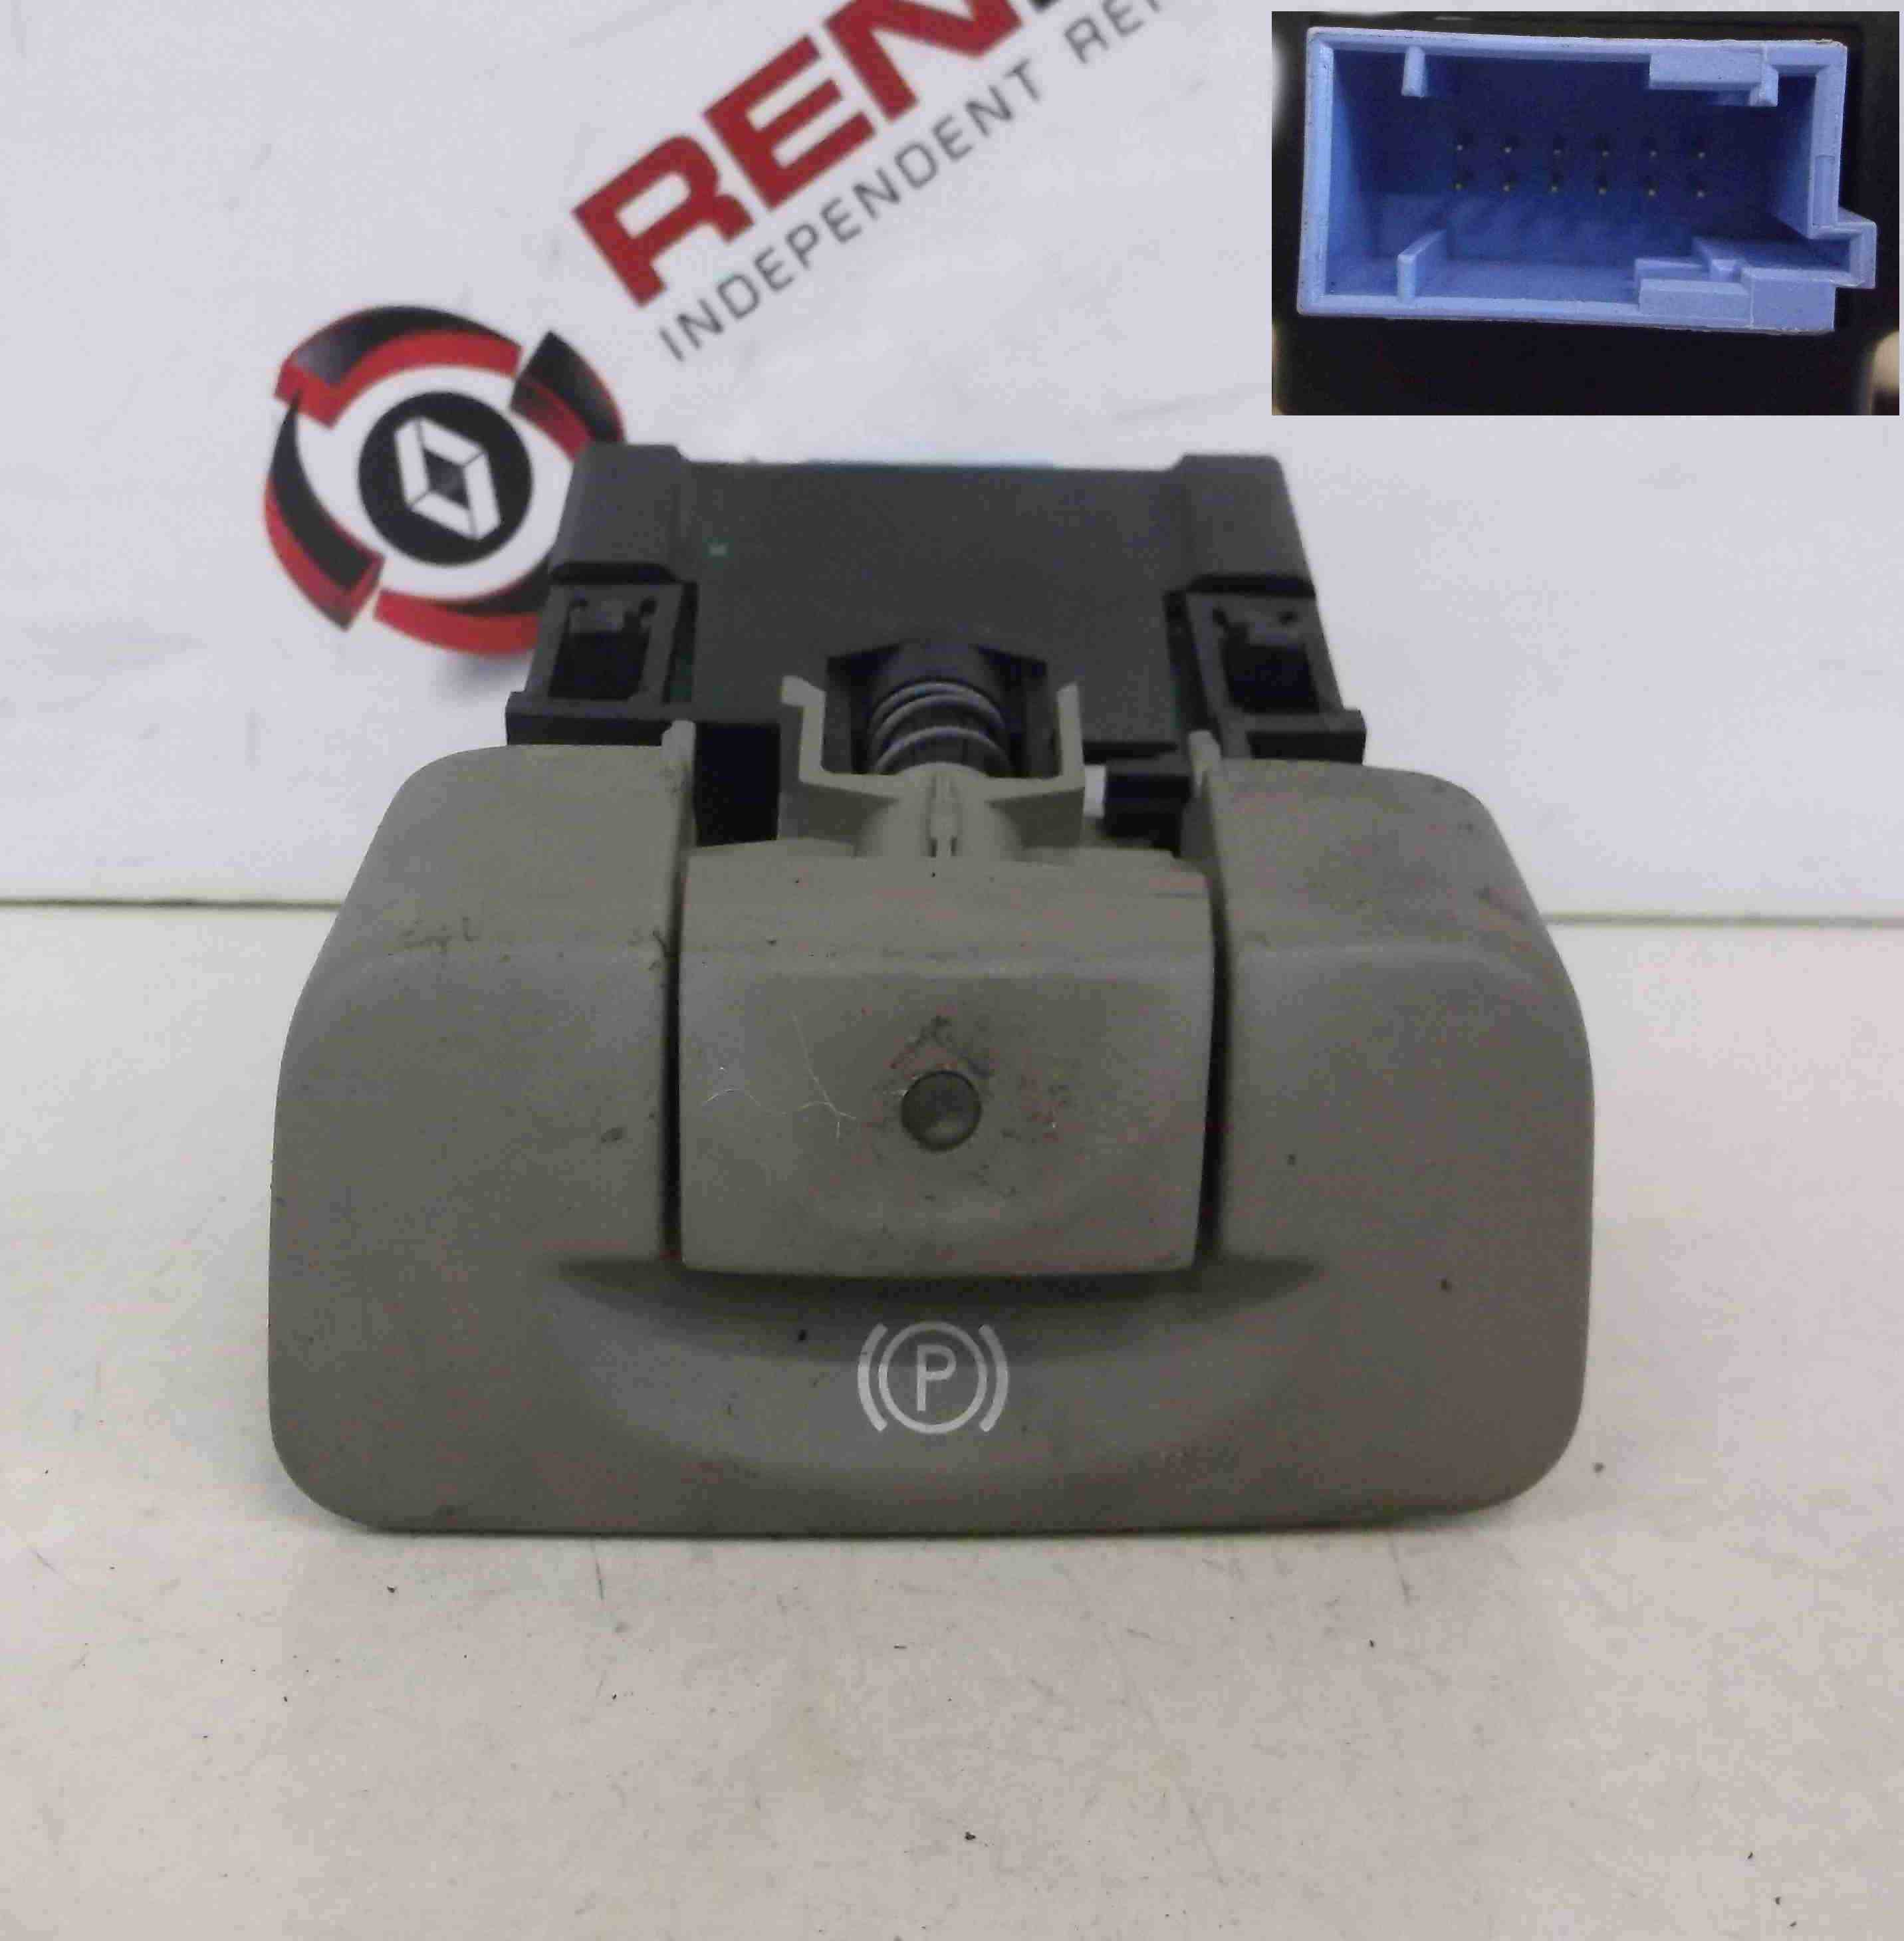 Renault Scenic 2003-2009 Electric Handbrake Lever Button Switch 8200270266